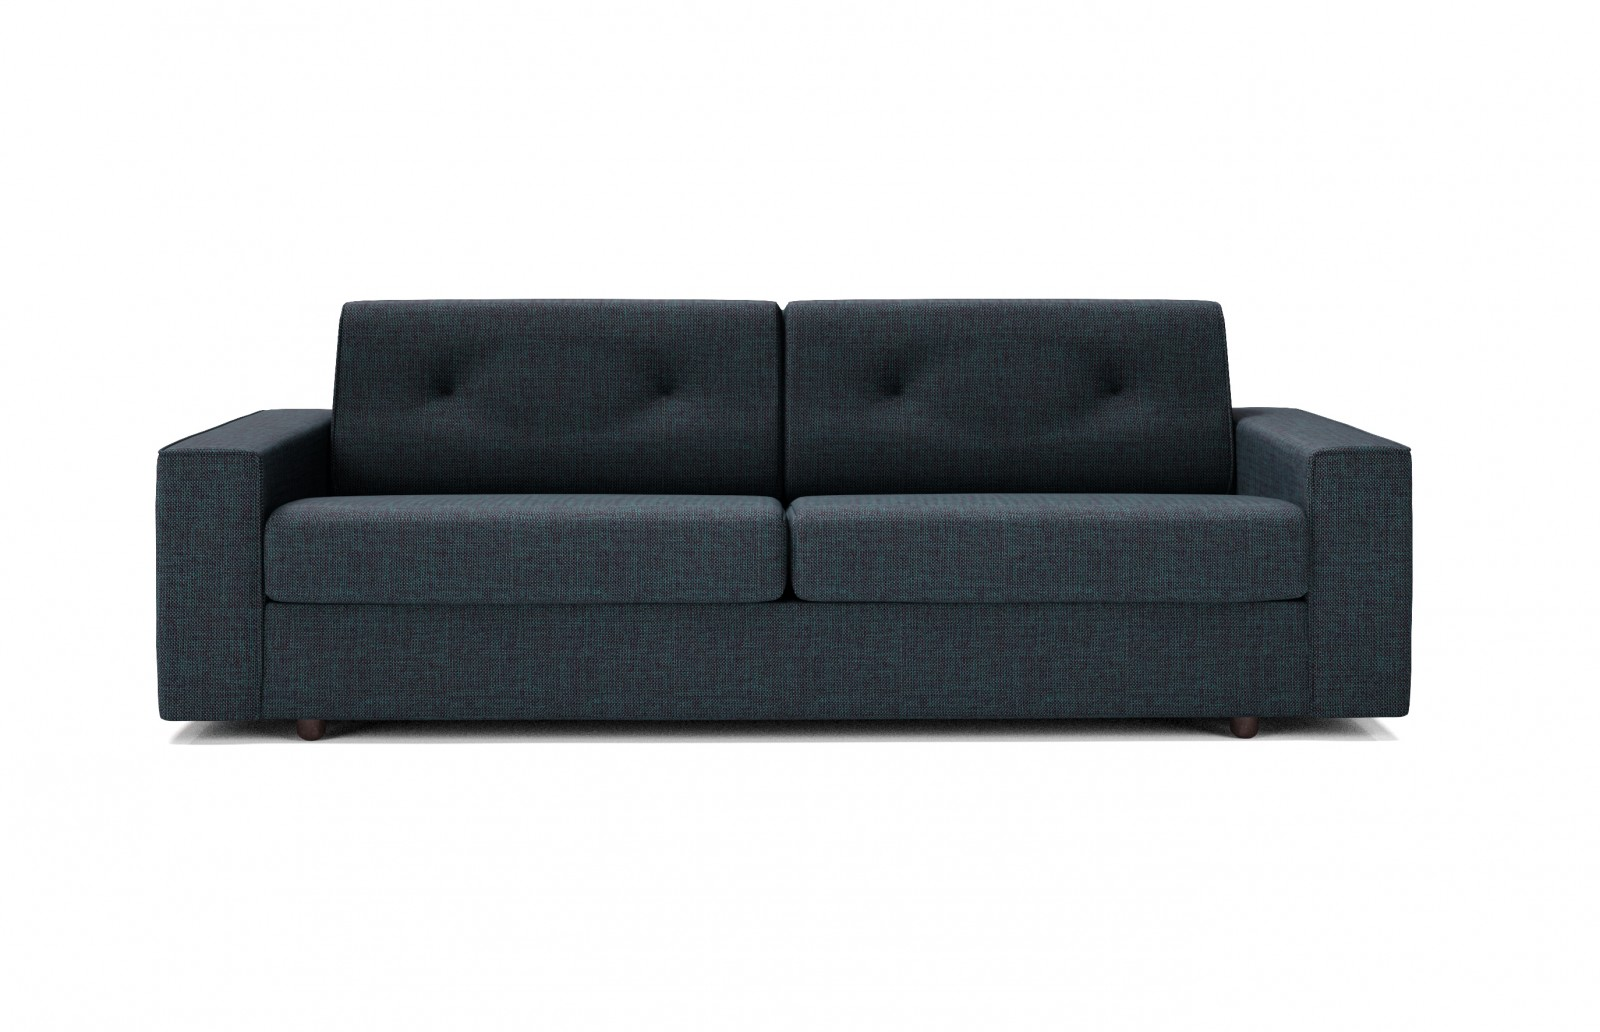 Sofa Bed Queen Size